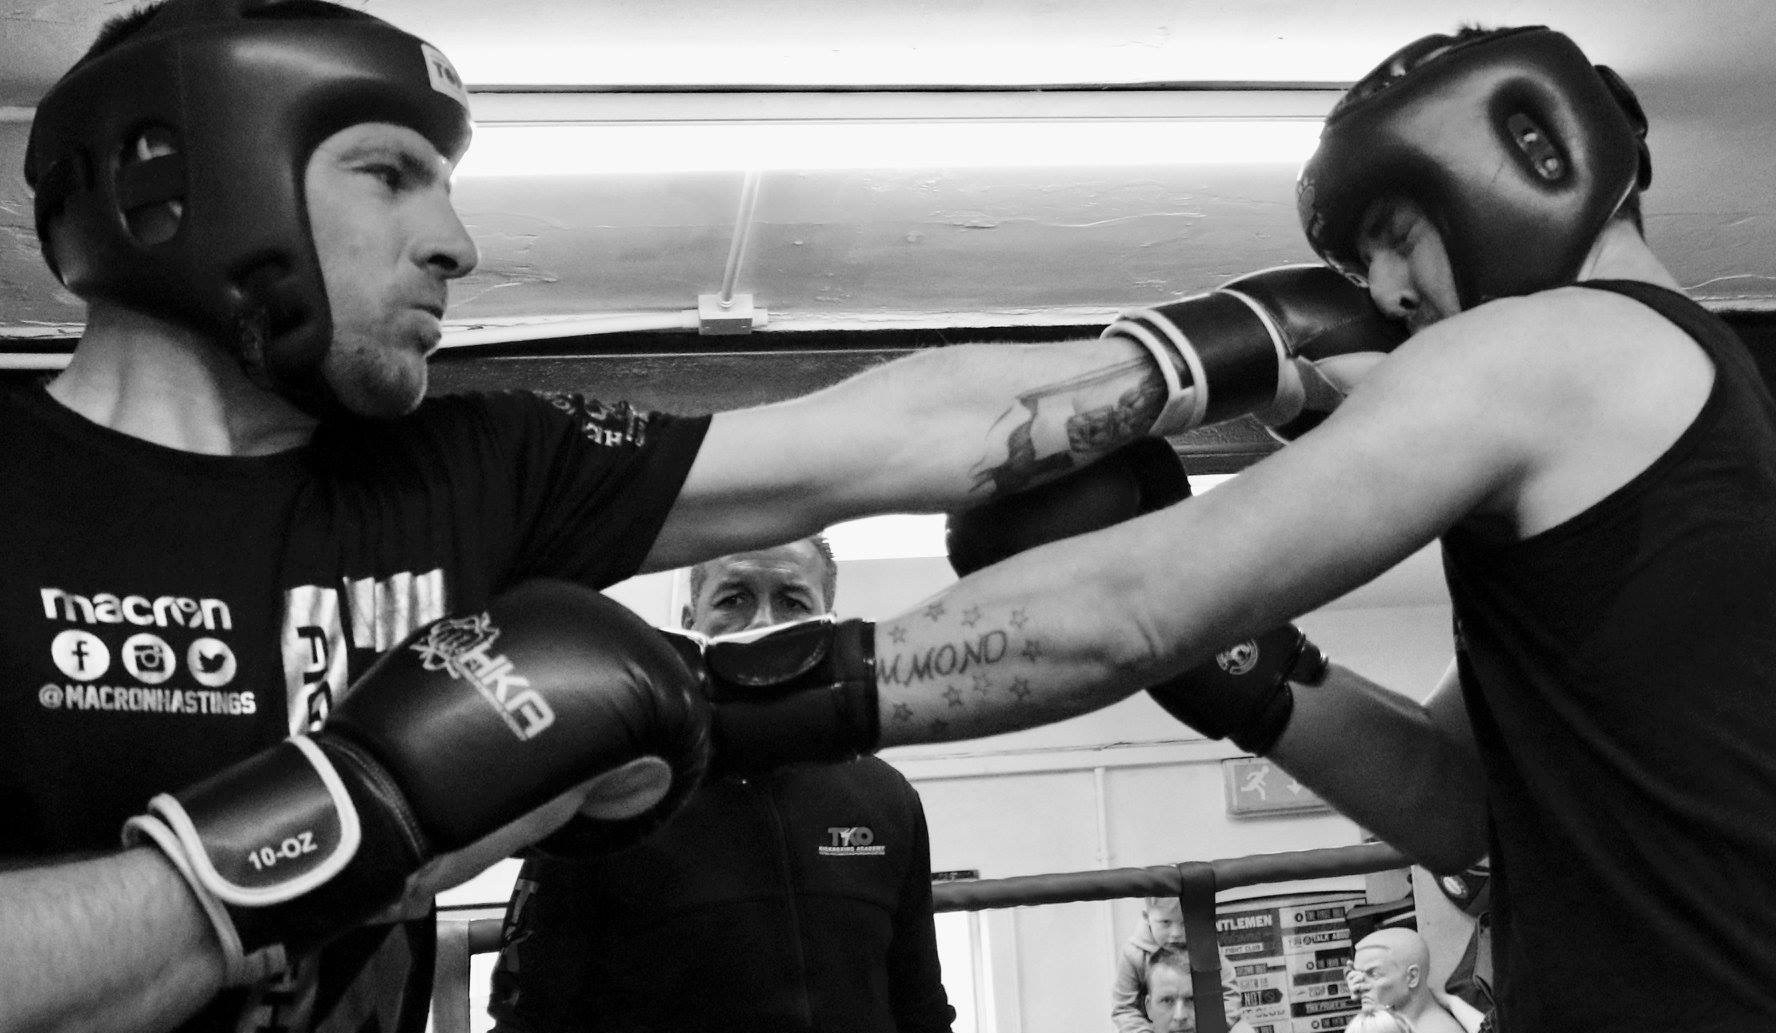 HKA's first–time fighters face their challenges head-on